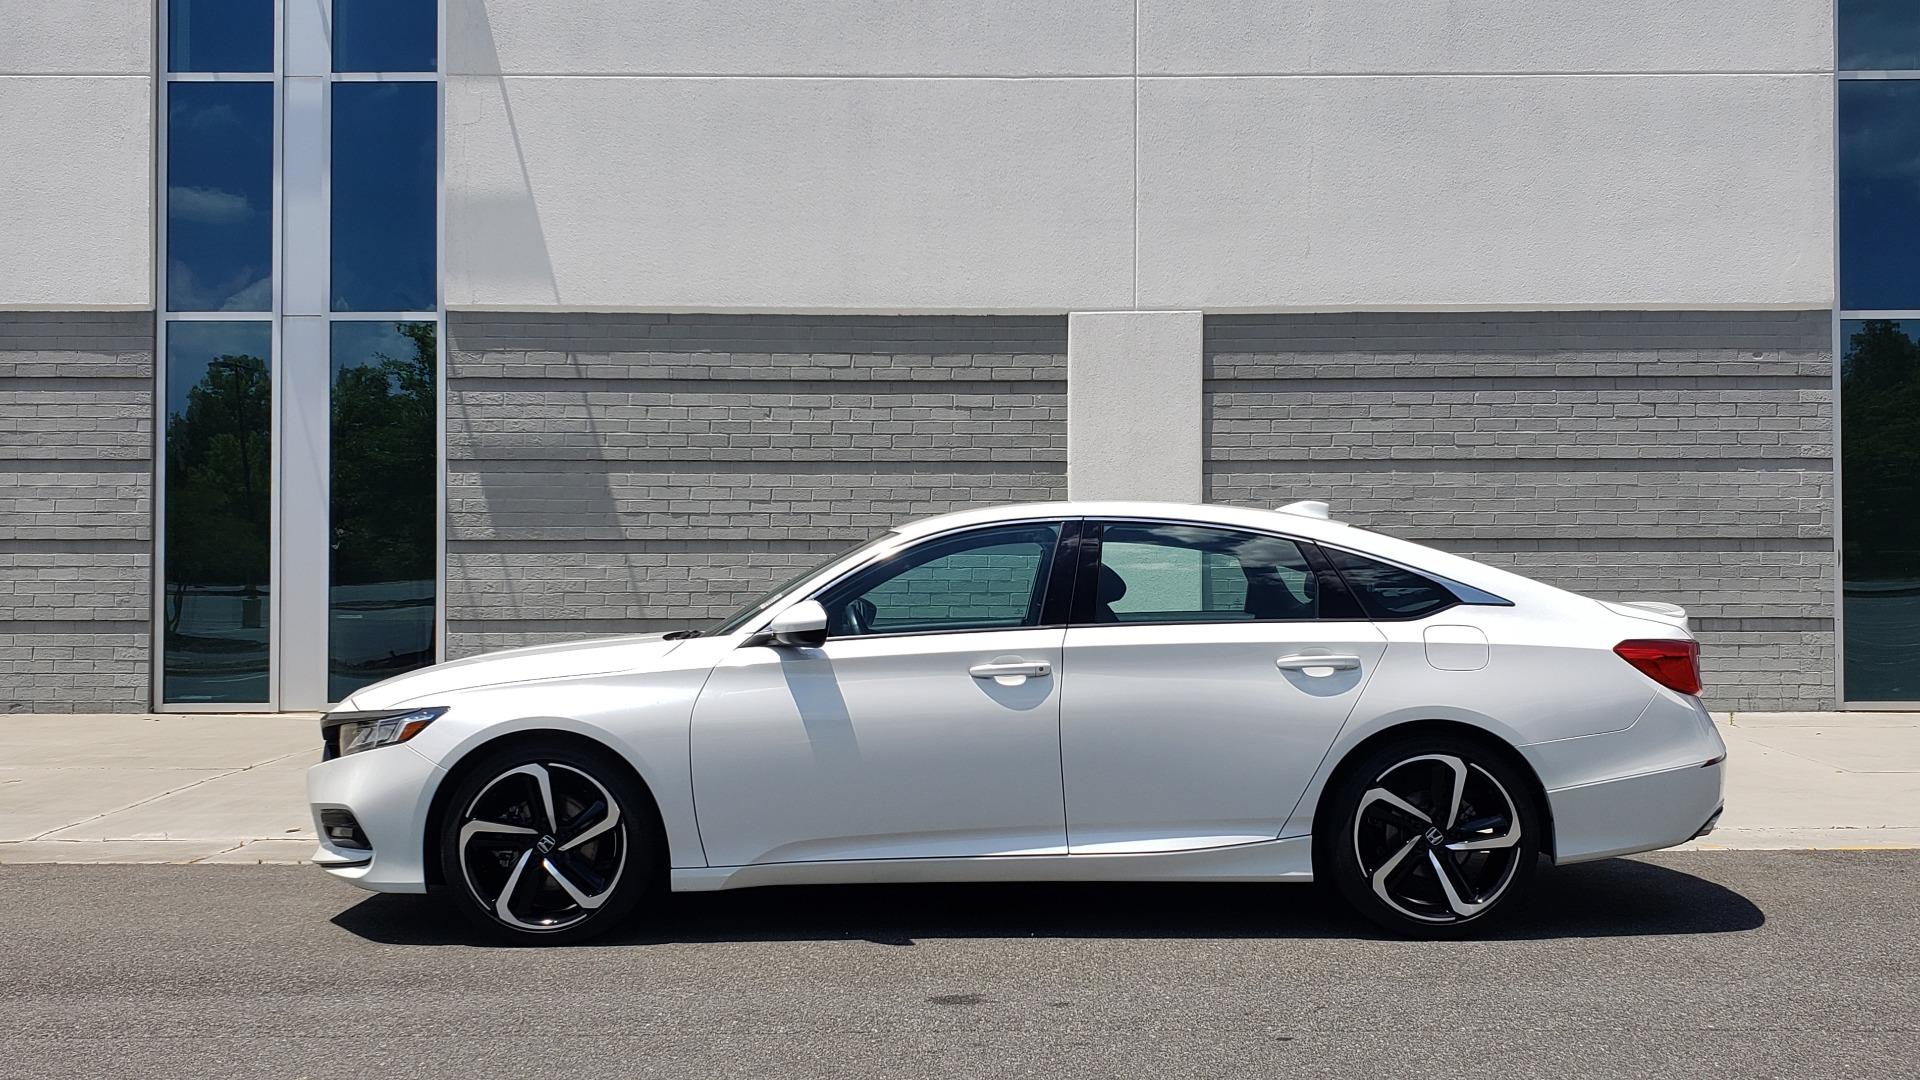 Used 2018 Honda ACCORD SEDAN SPORT 1.5T / CVT TRANS / FWD / 19IN WHEELS for sale $20,995 at Formula Imports in Charlotte NC 28227 5